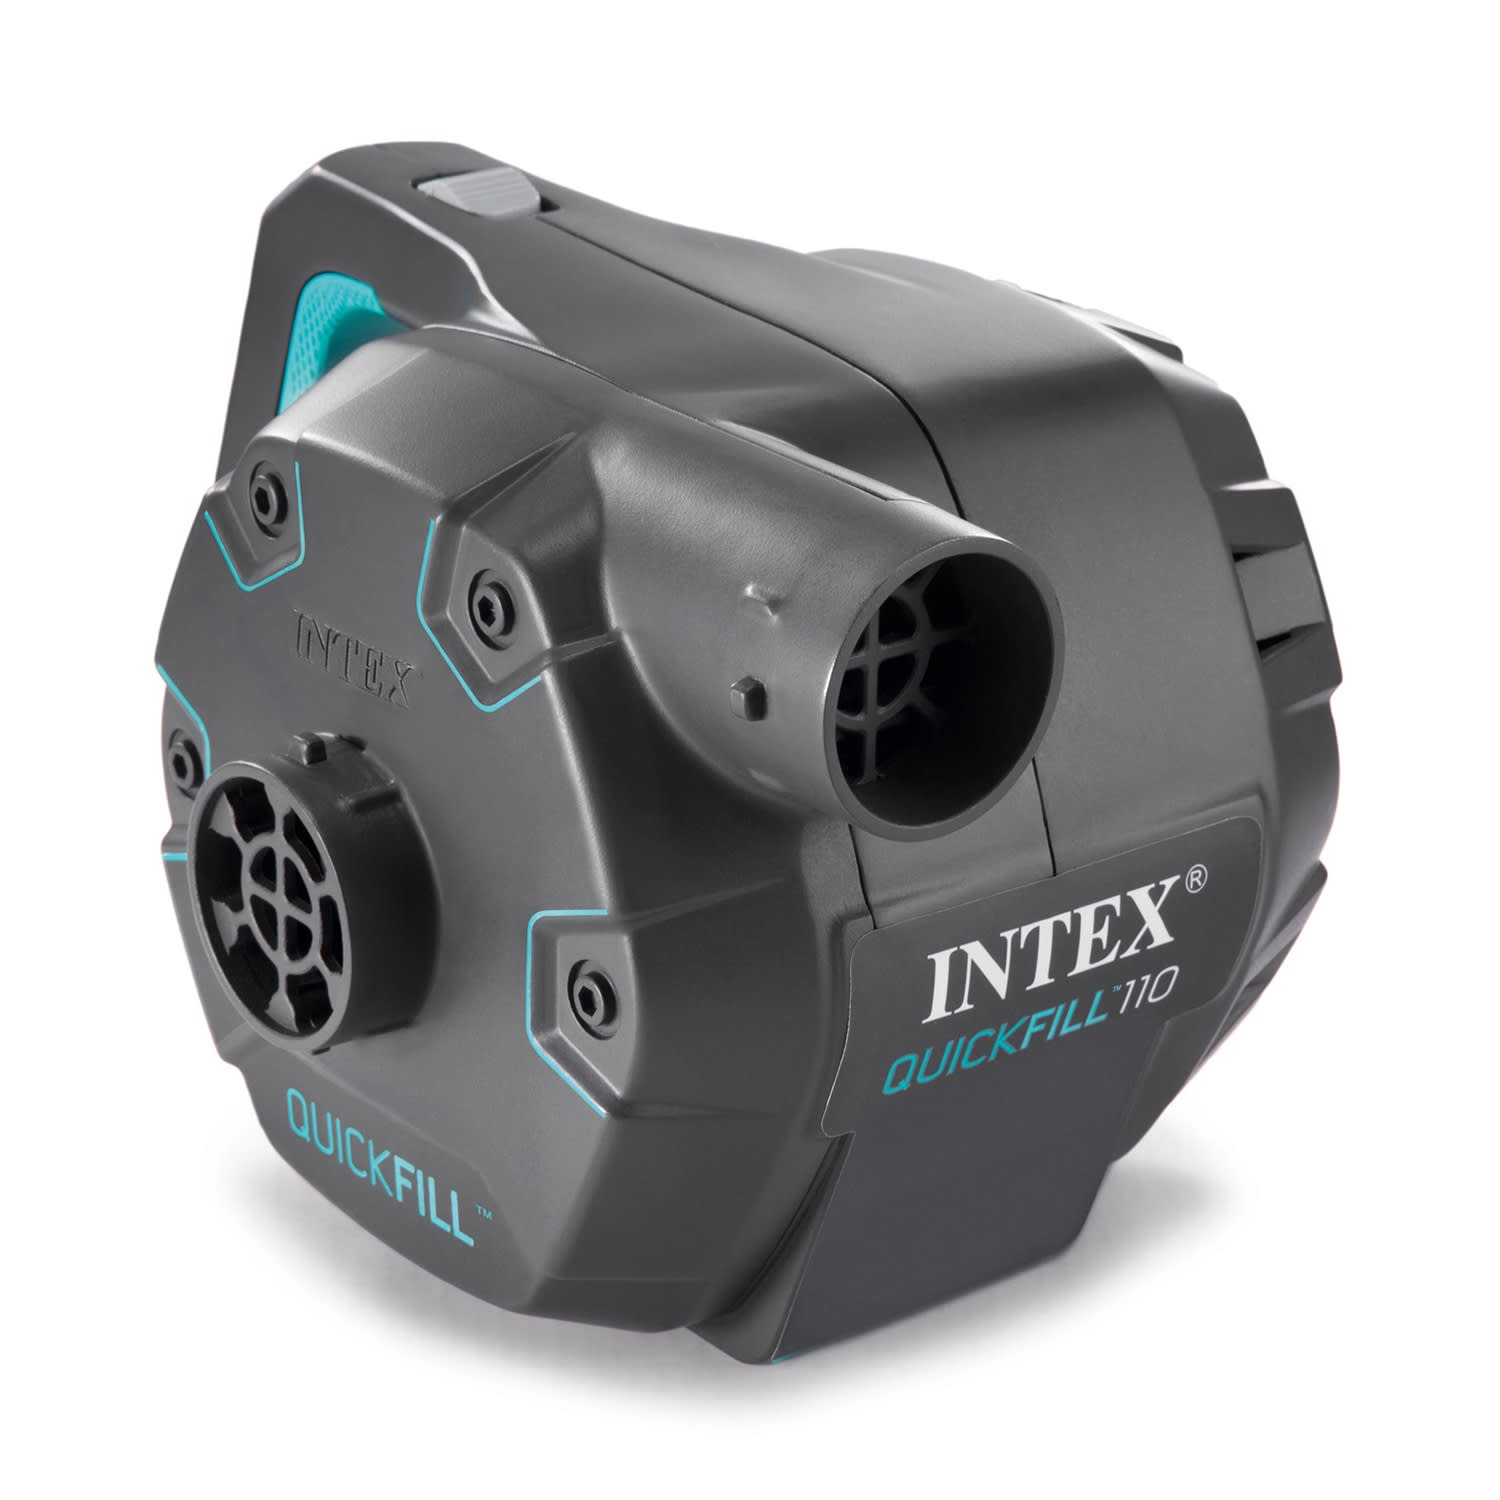 Intex Quick-Fill AC Electric Pump